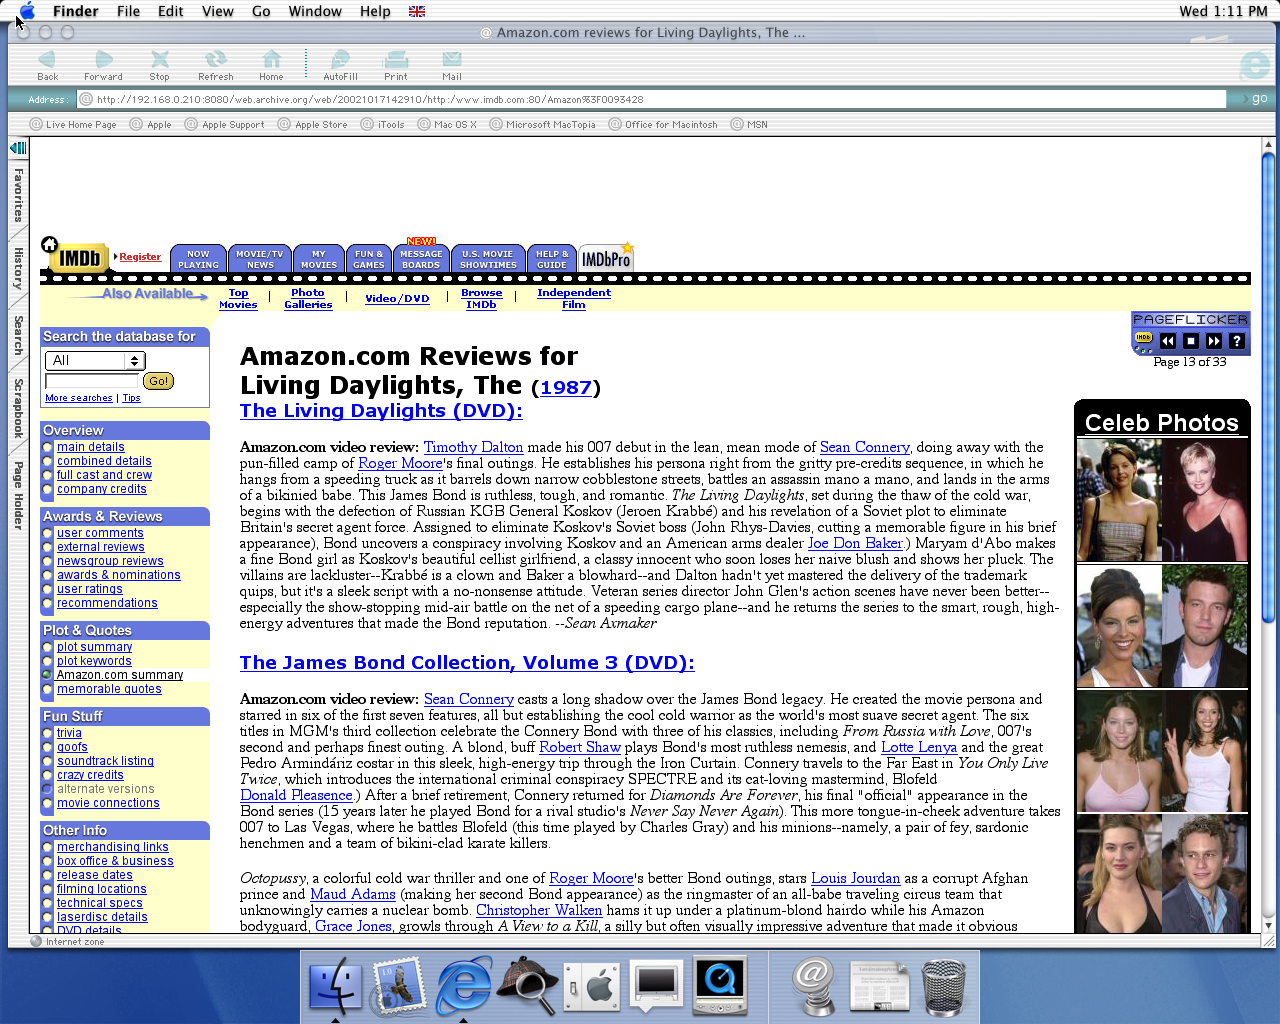 OS X 10.0 PPC with Microsoft Internet Explorer 5.1 for Mac Preview displaying a page from IMDB archived at October 17, 2002 at 14:29:10